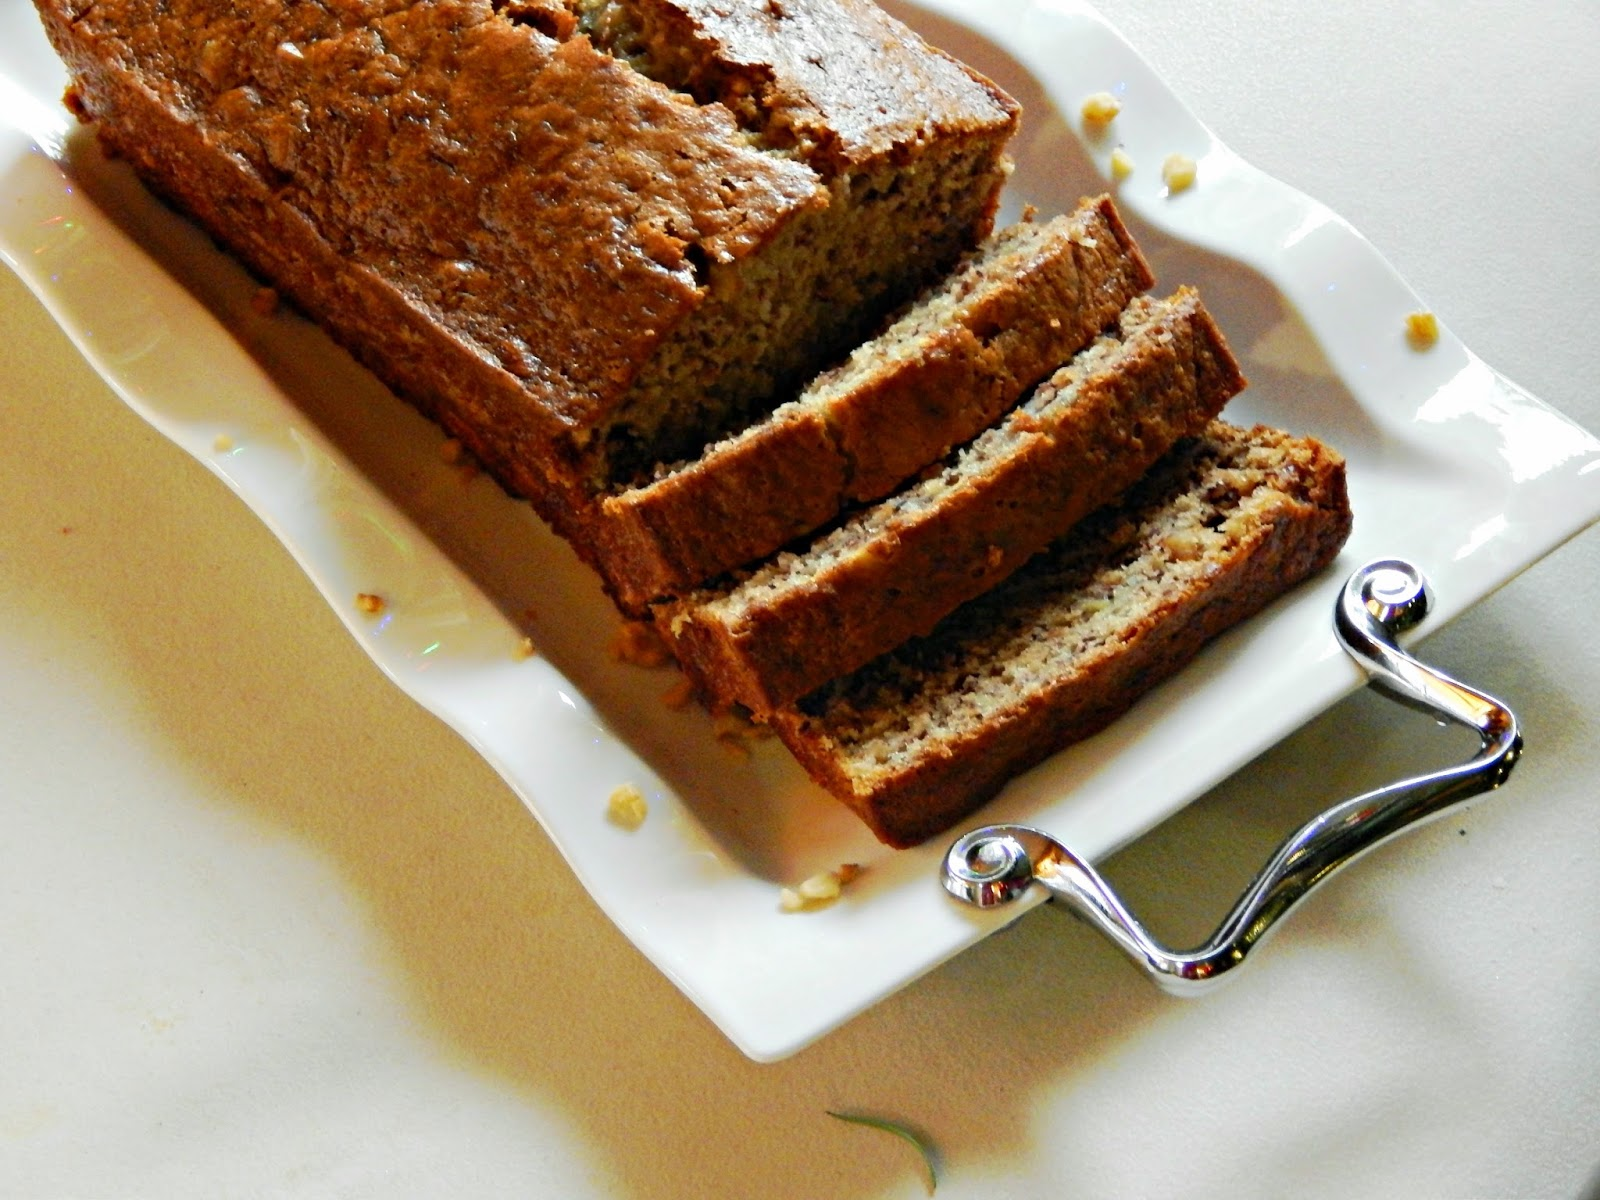 Easy Banana Bread recipe made with MIRACLE WHIP #tastethemiracle #ad #cbias